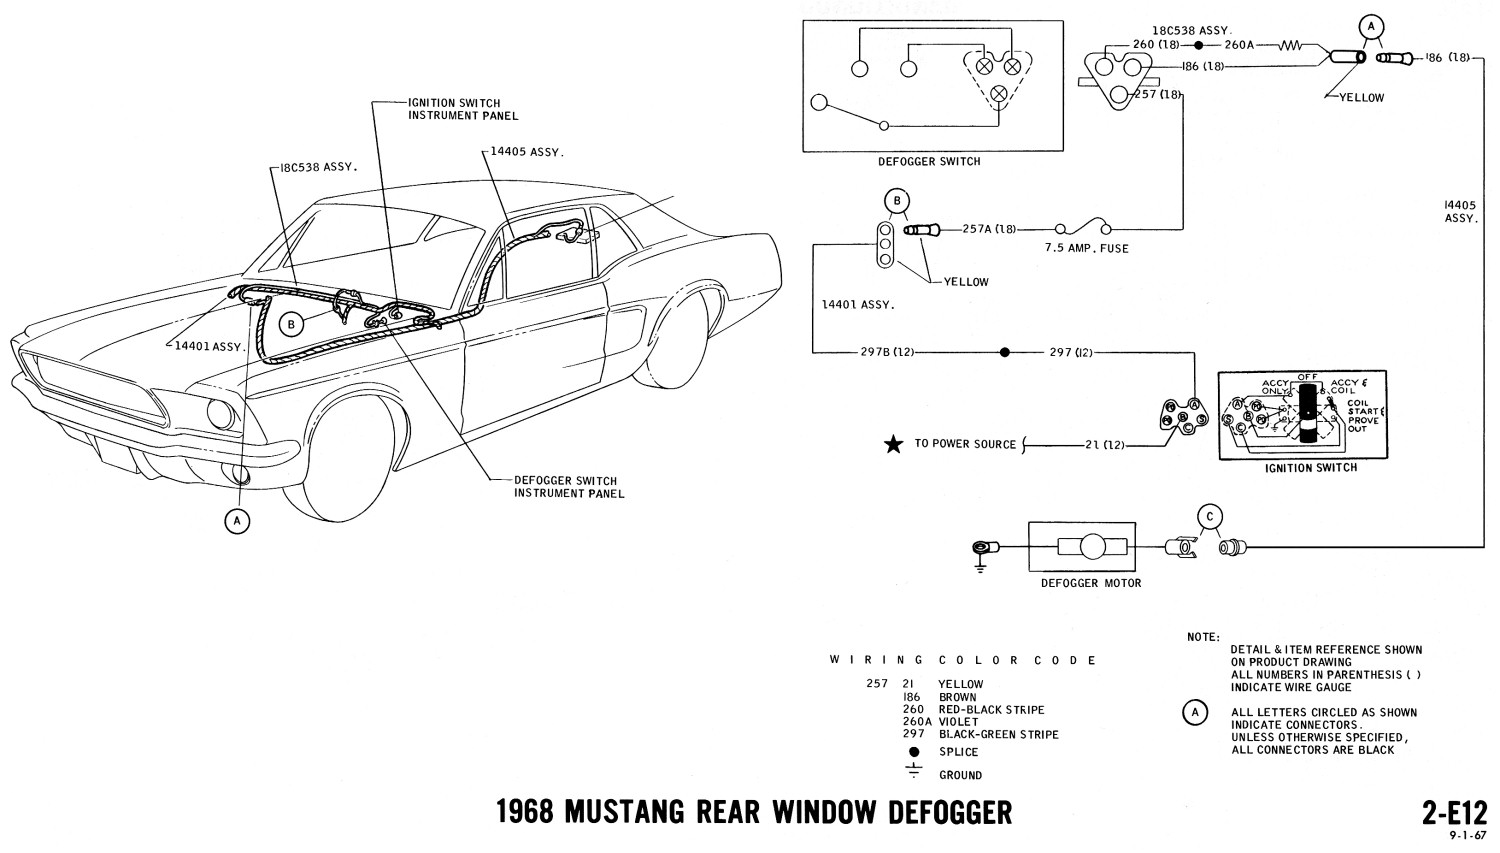 1968 Mustang Wiring Diagrams Evolving Software Ford F100 Wiper Switch Diagram Defogger